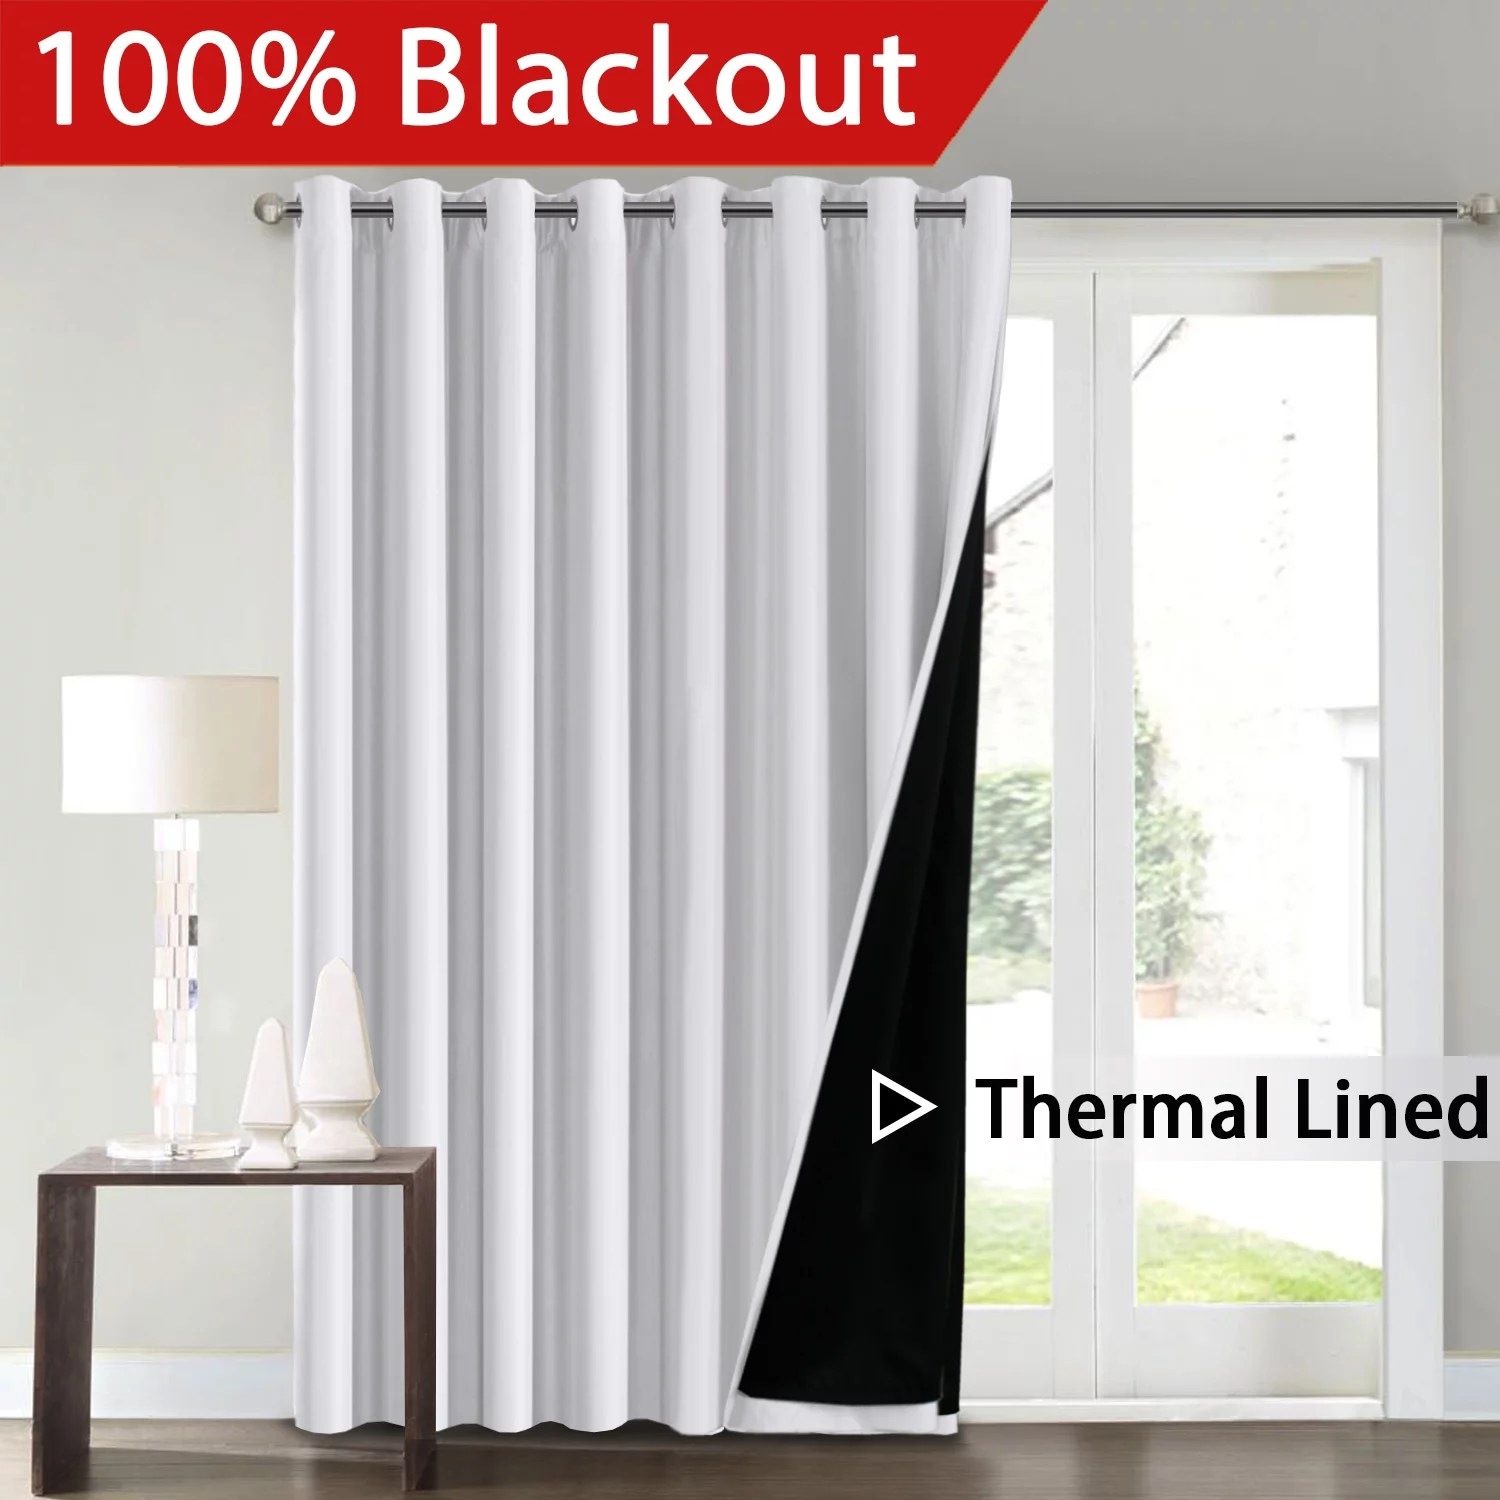 flamingop full blackout white wide patio door curtains faux silk satin with black liner thermal insulated room divider window treatment panels